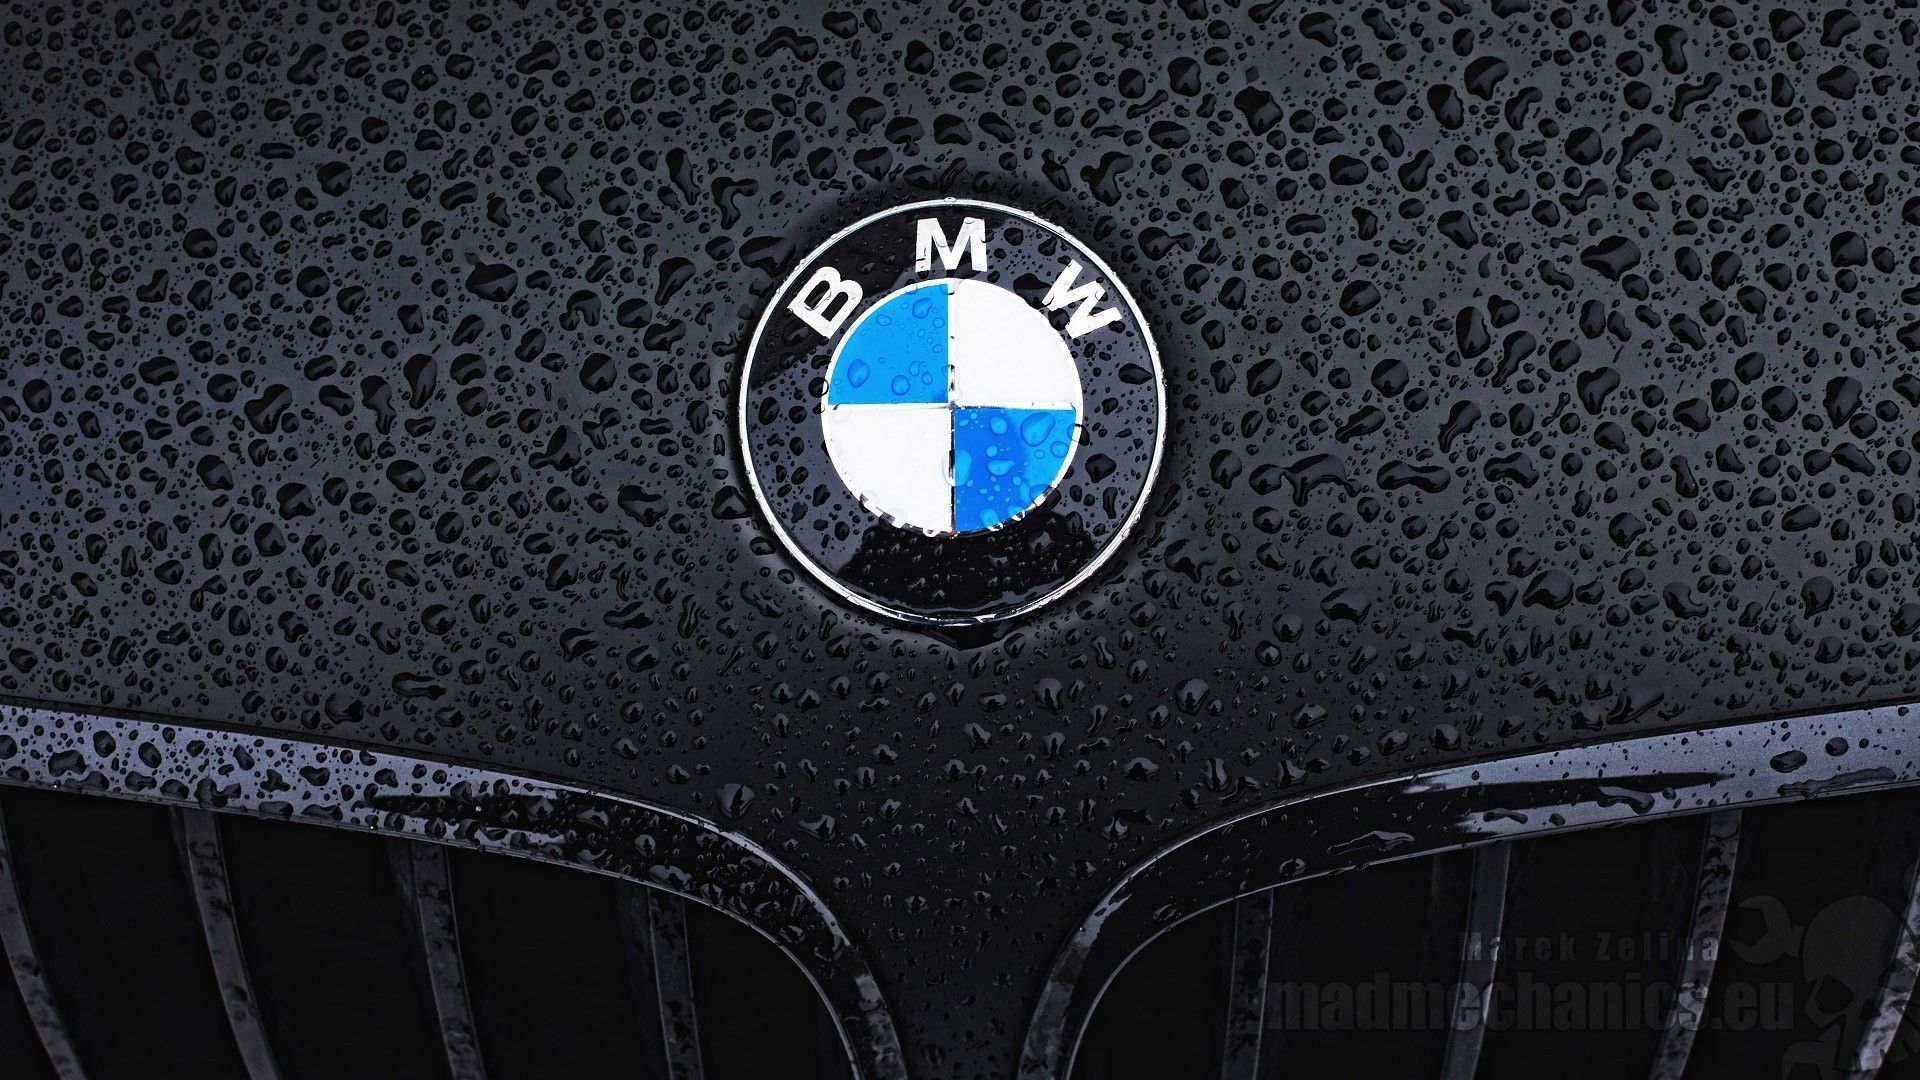 M M Desktop Wallpaper: BMW M Logo Wallpapers - Wallpaper Cave